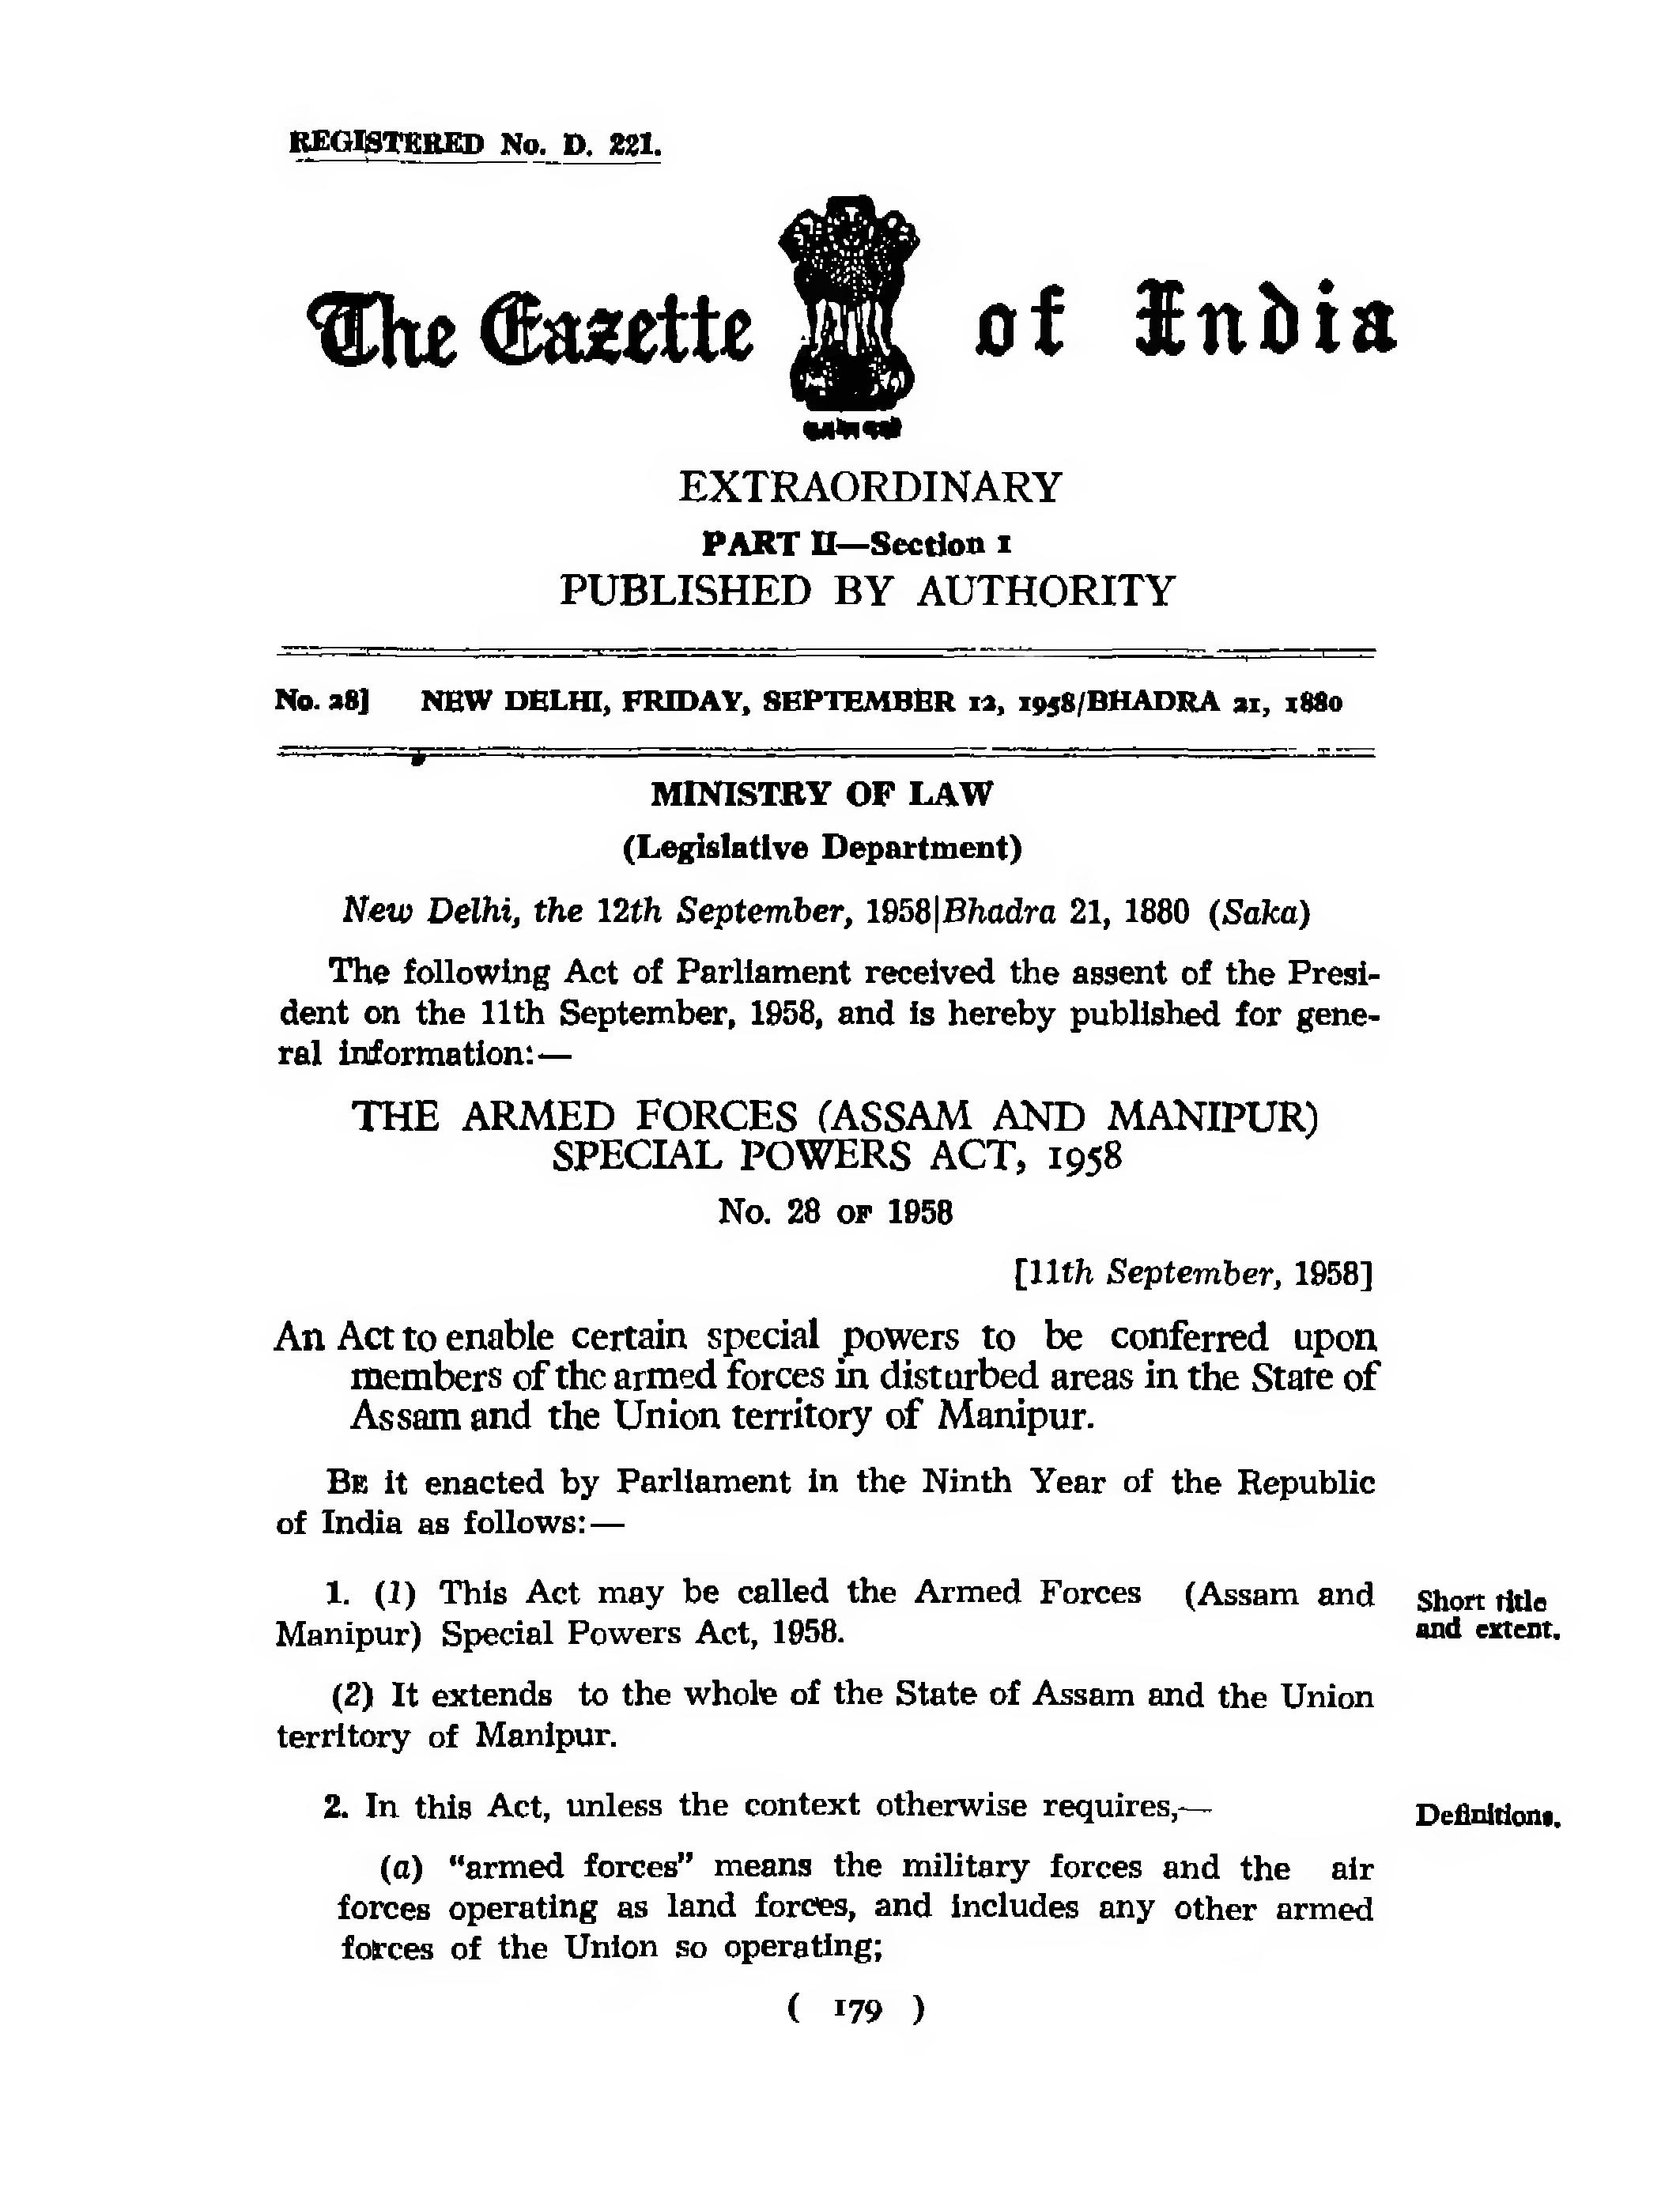 essay on armed forces special power act The armed forces (special powers) act is a law, enacted by the parliament of india, to meet violent internal situations created by underground militant outfits to further their illegal and 'unconstitutional' causes.